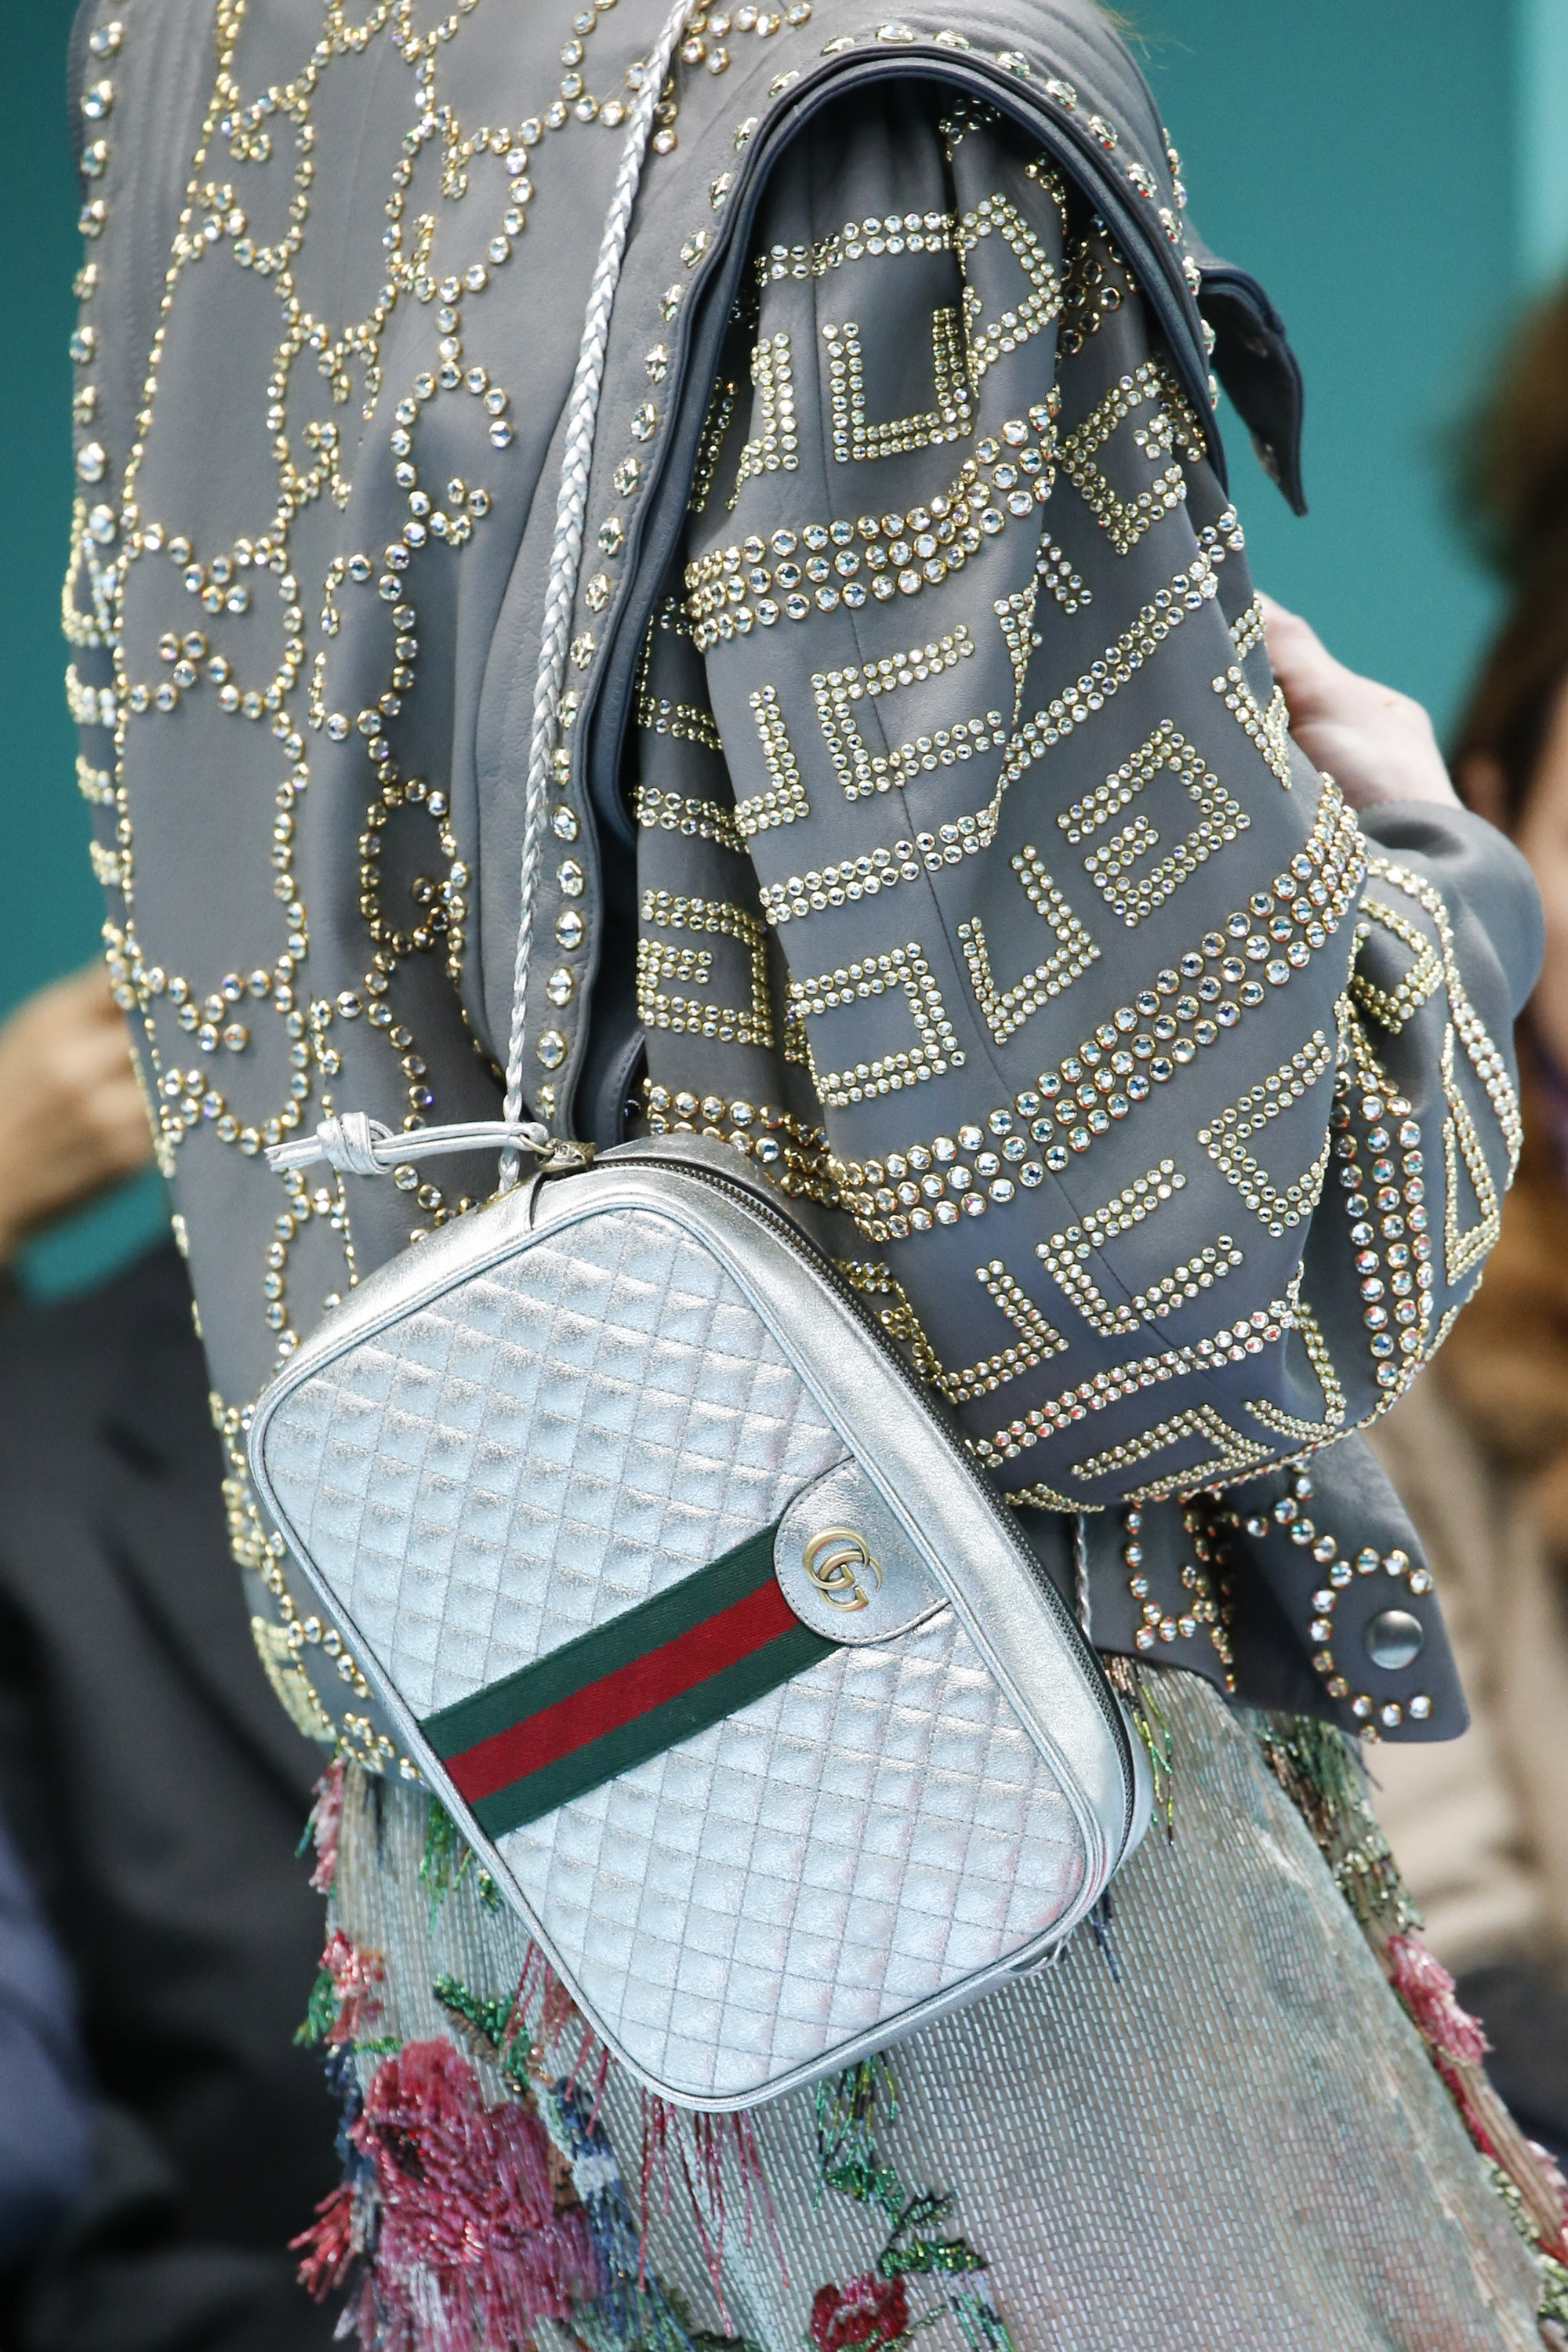 gucci fallwinter 2018 runway bag collection spotted fashion